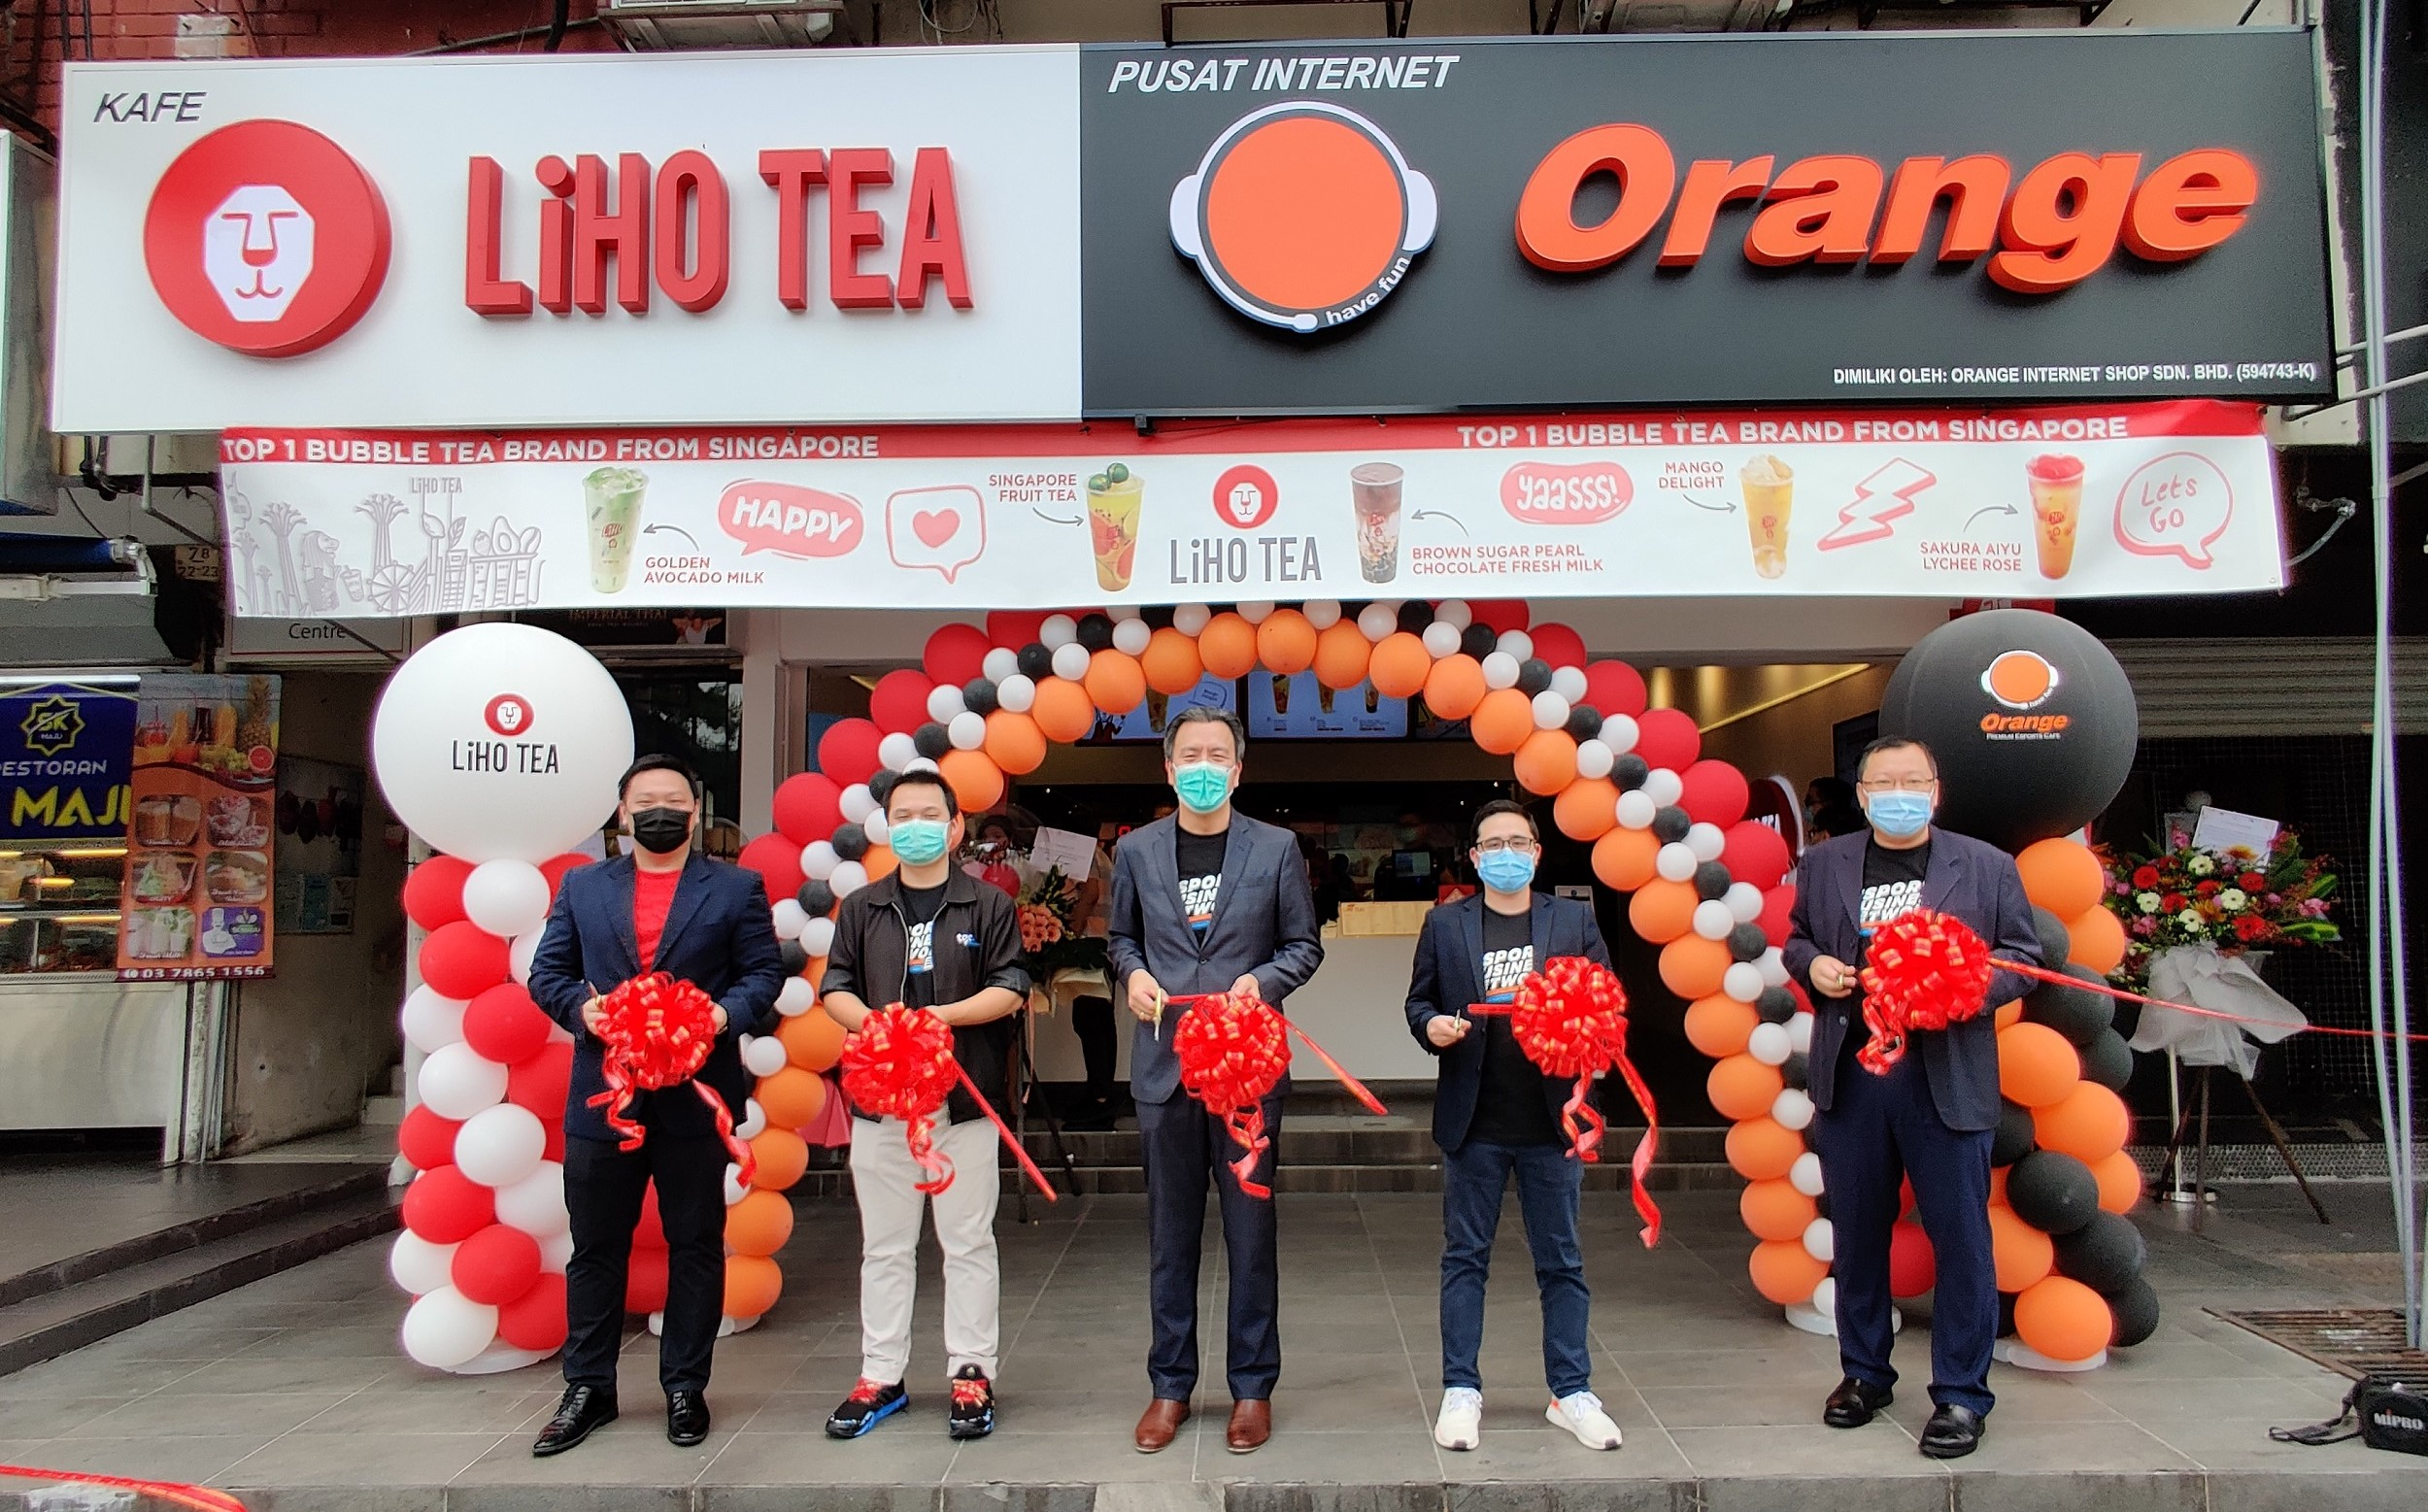 ORANGE ESPORTS CAFE PARTNERS WITH LIHO TEA TO LAUNCH FIRST ESPORTS AND LIFESTYLE CAFE